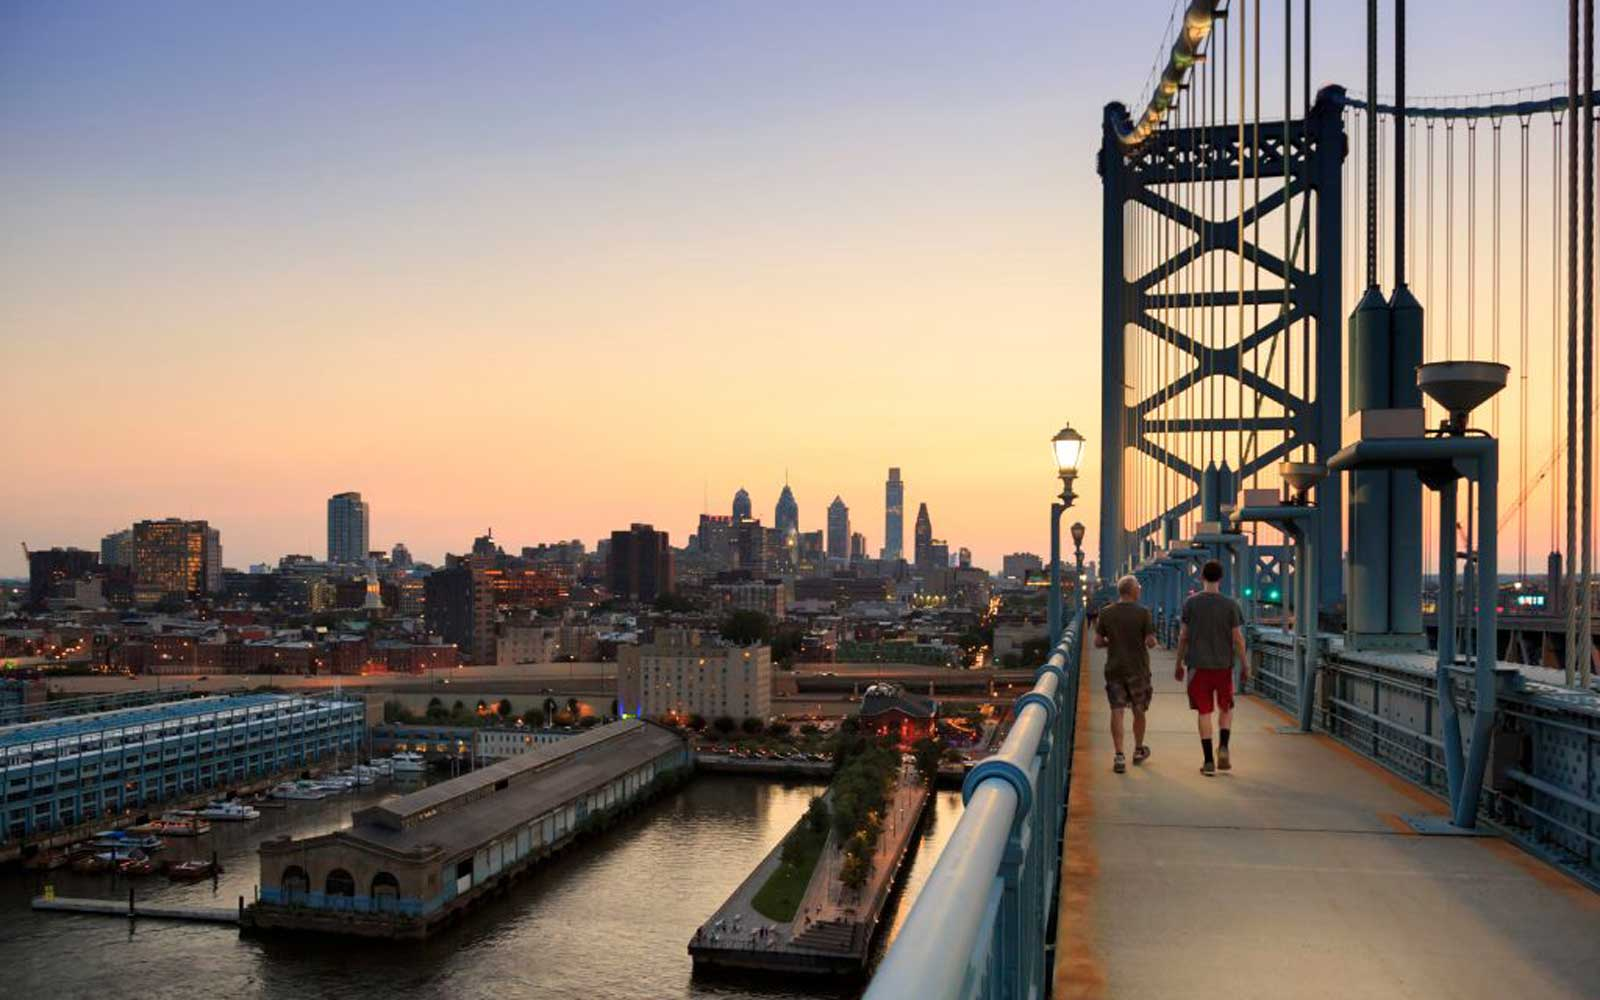 T+L Summer Shortlist: What to Bring on a Trip to Philadelphia